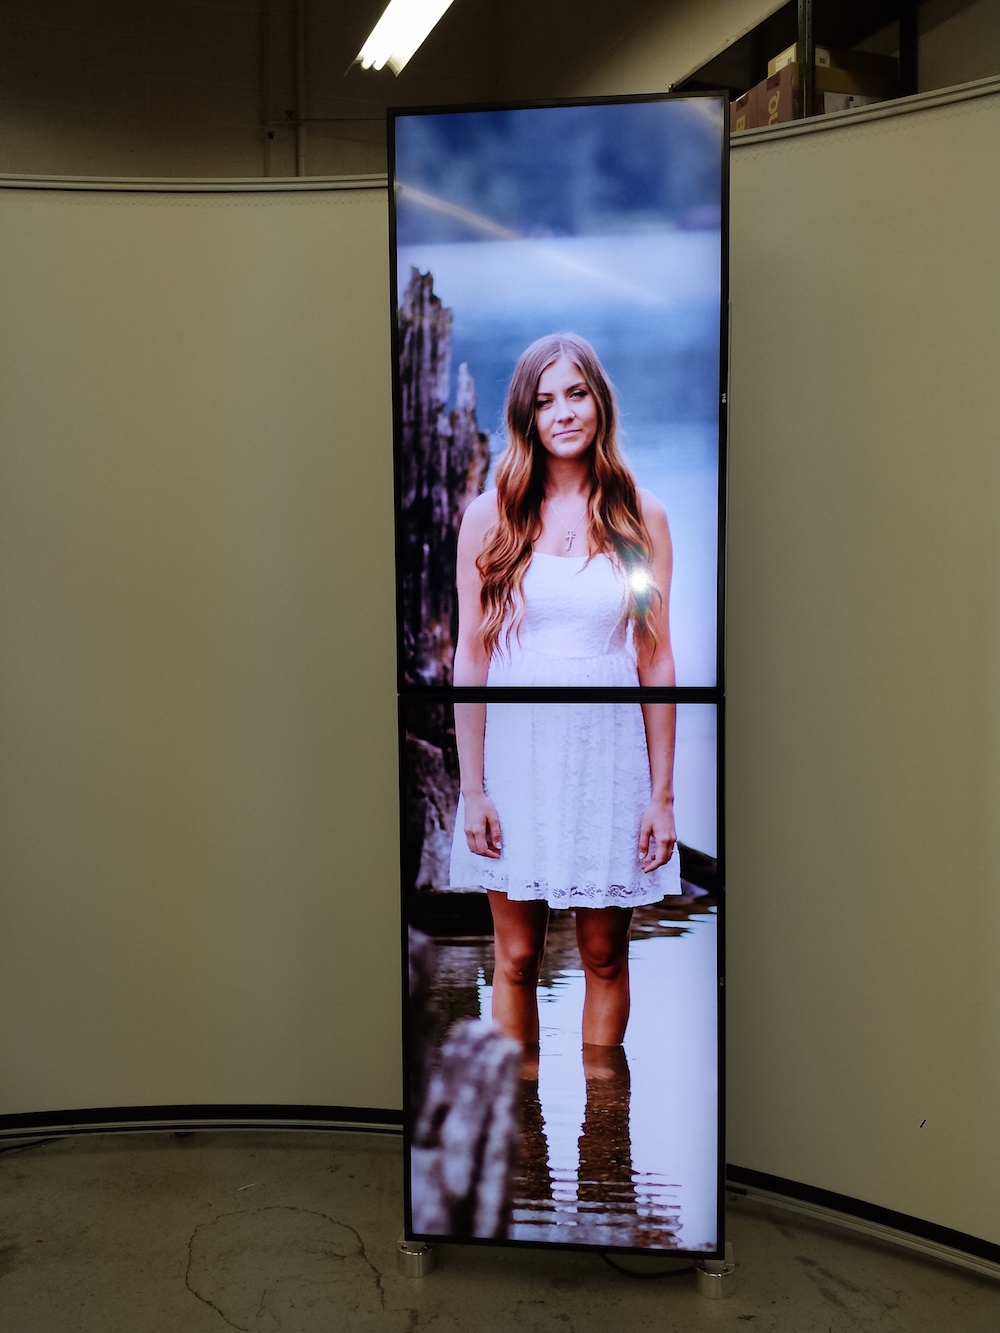 Life size store front digital signage built by RPT Motion